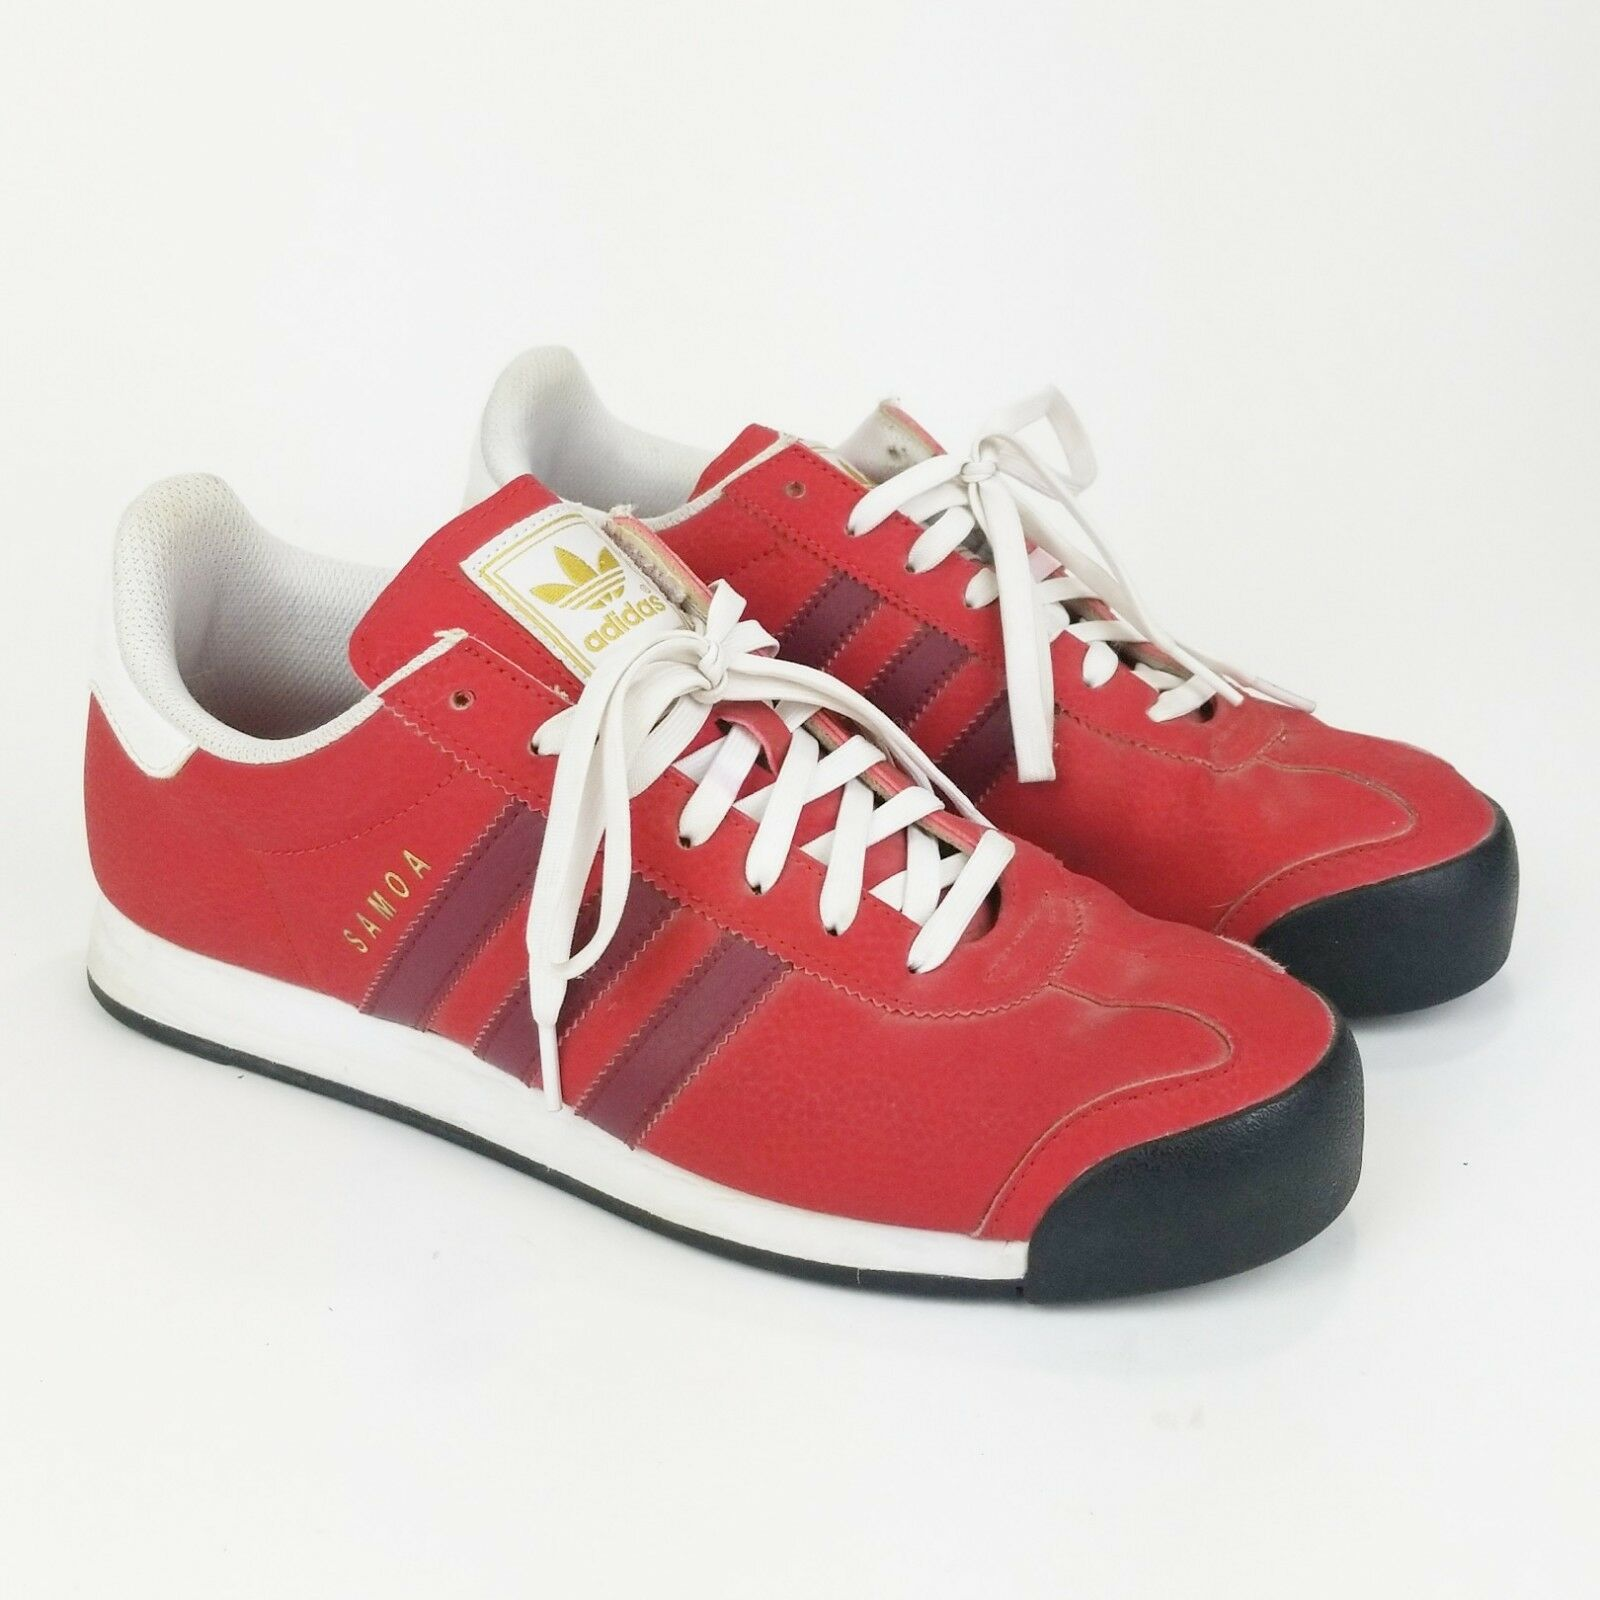 VTG Adidas Mens shoes Sz 8.5 Red Somoa Sneakers